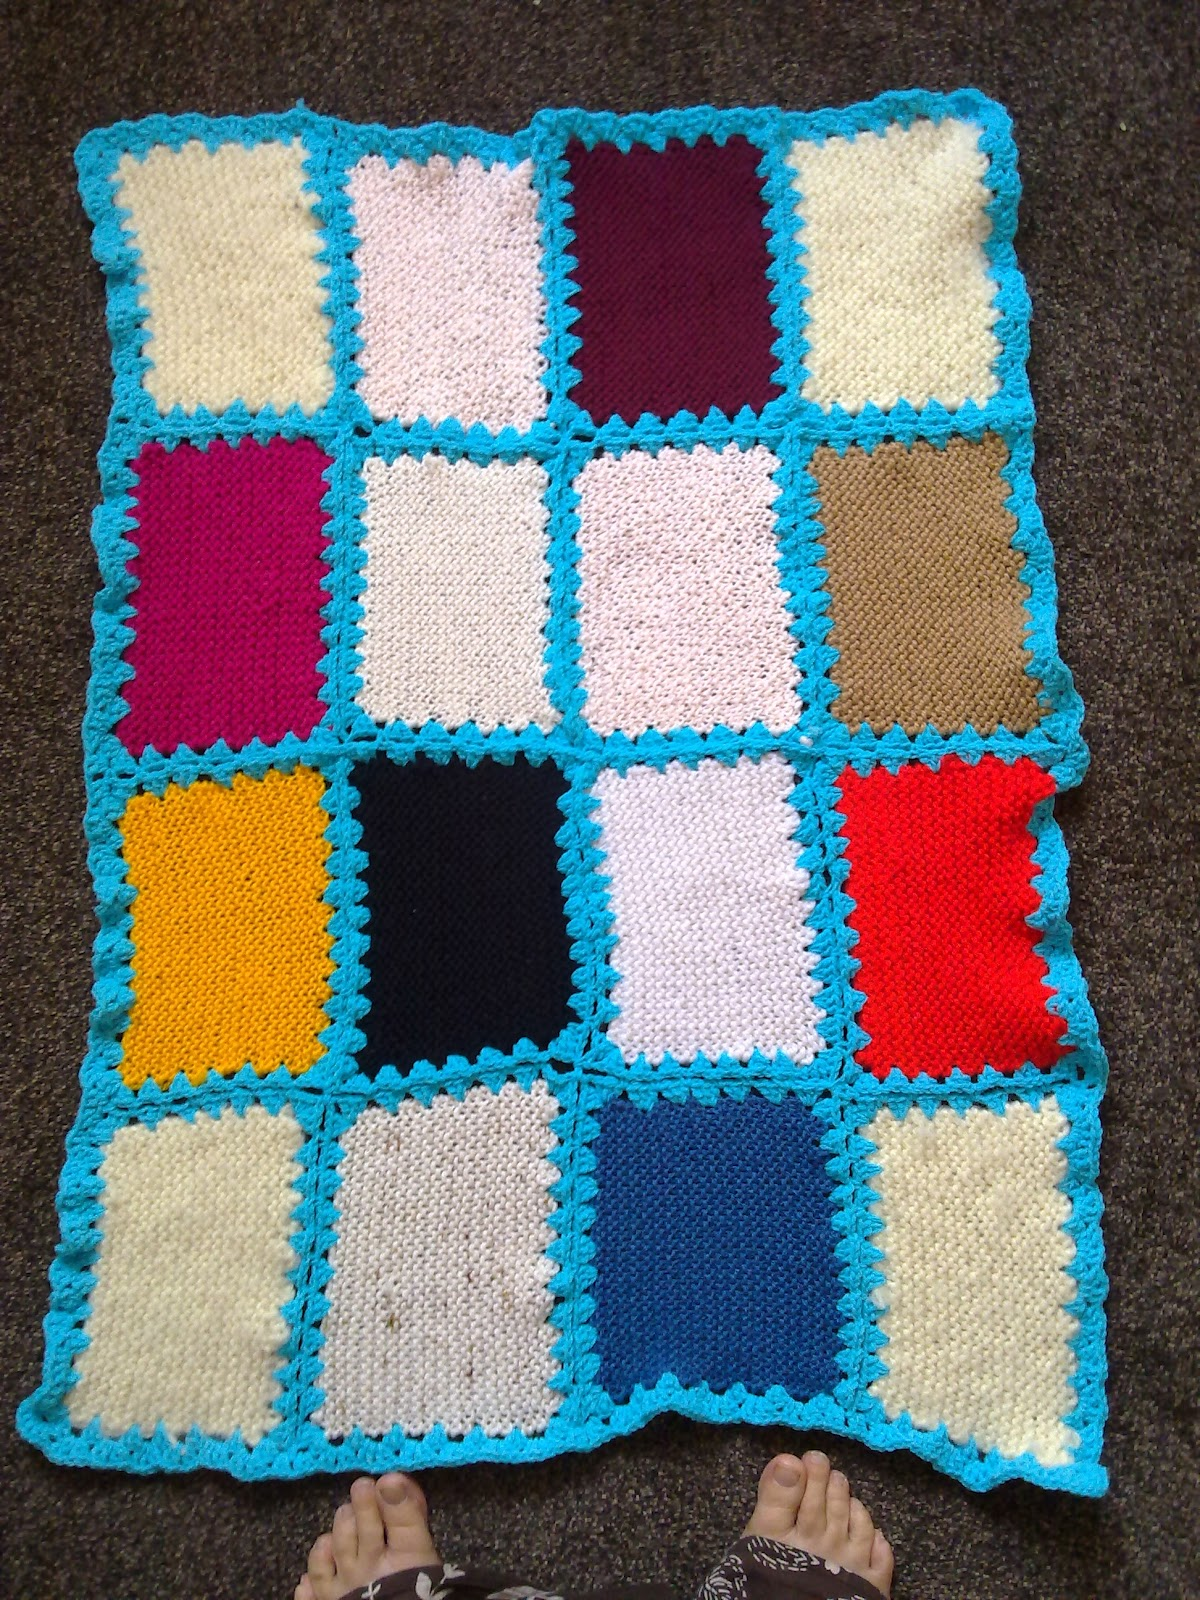 How To Crochet Knitted Squares Together